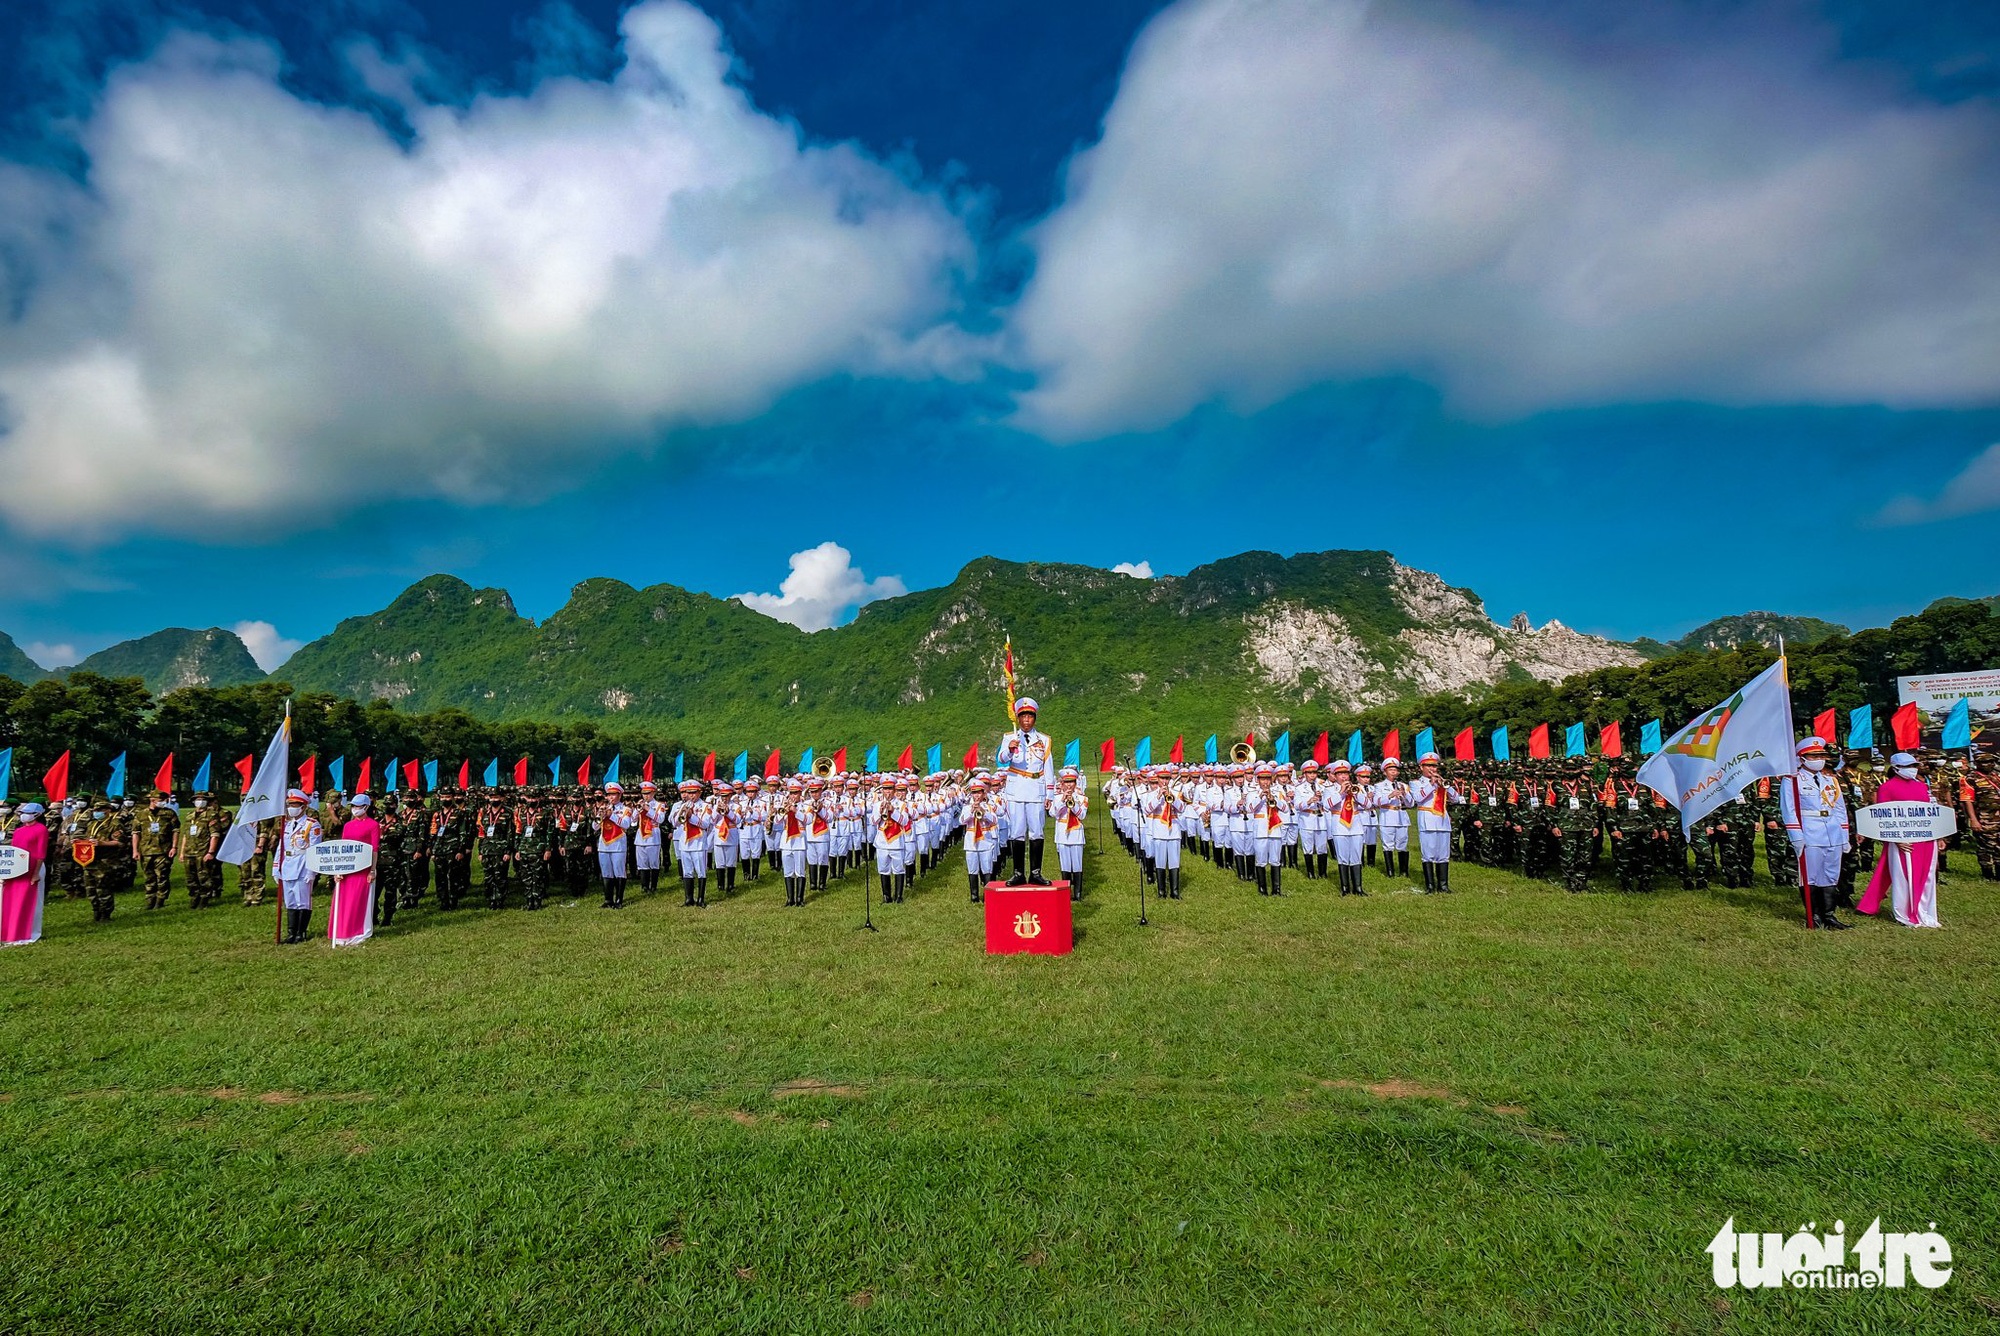 Events of 2021 International Army Games kick off in Vietnam